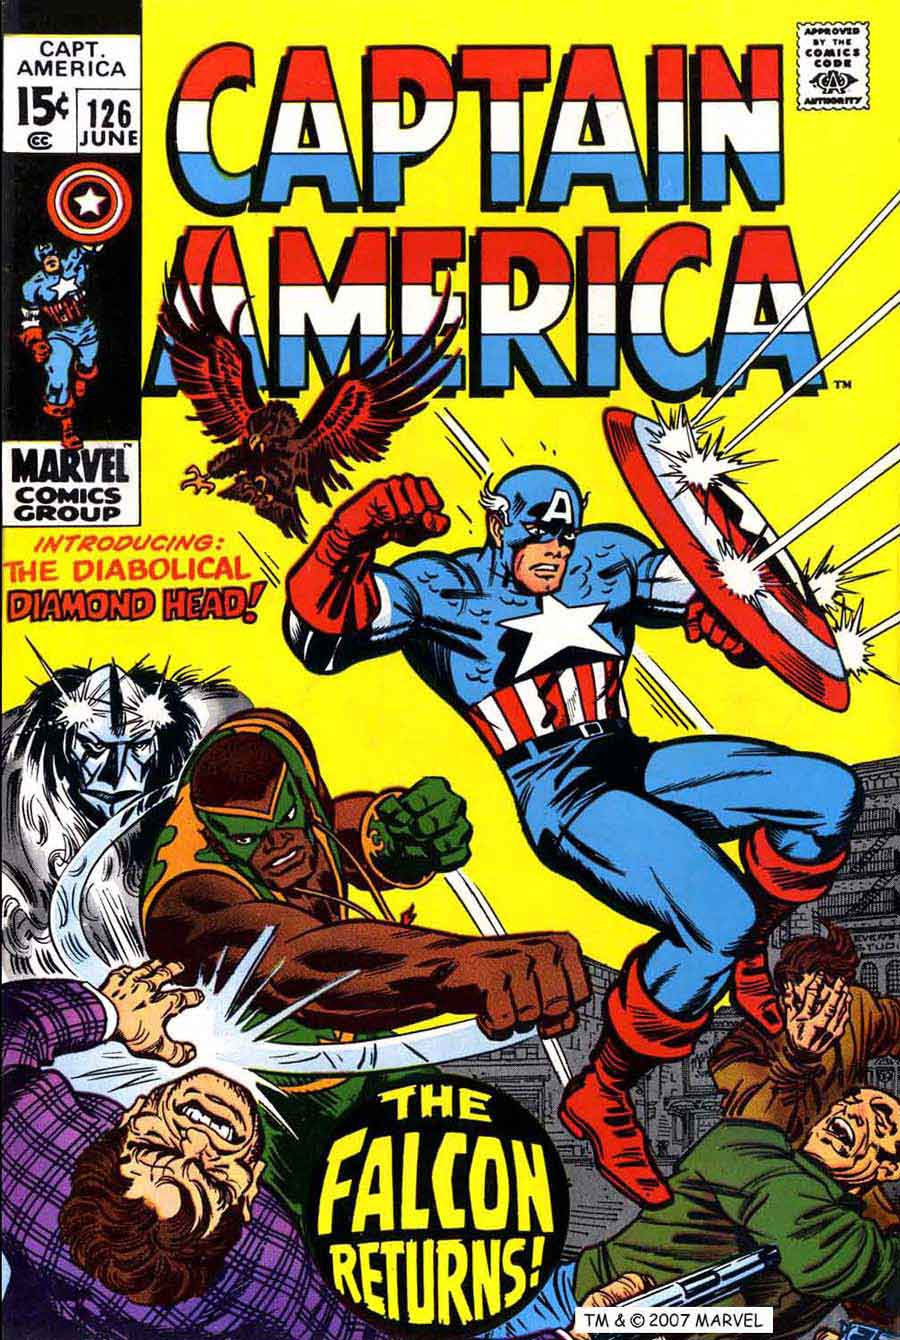 Captain America v1 #126 marvel comic book cover art by Jack Kirby